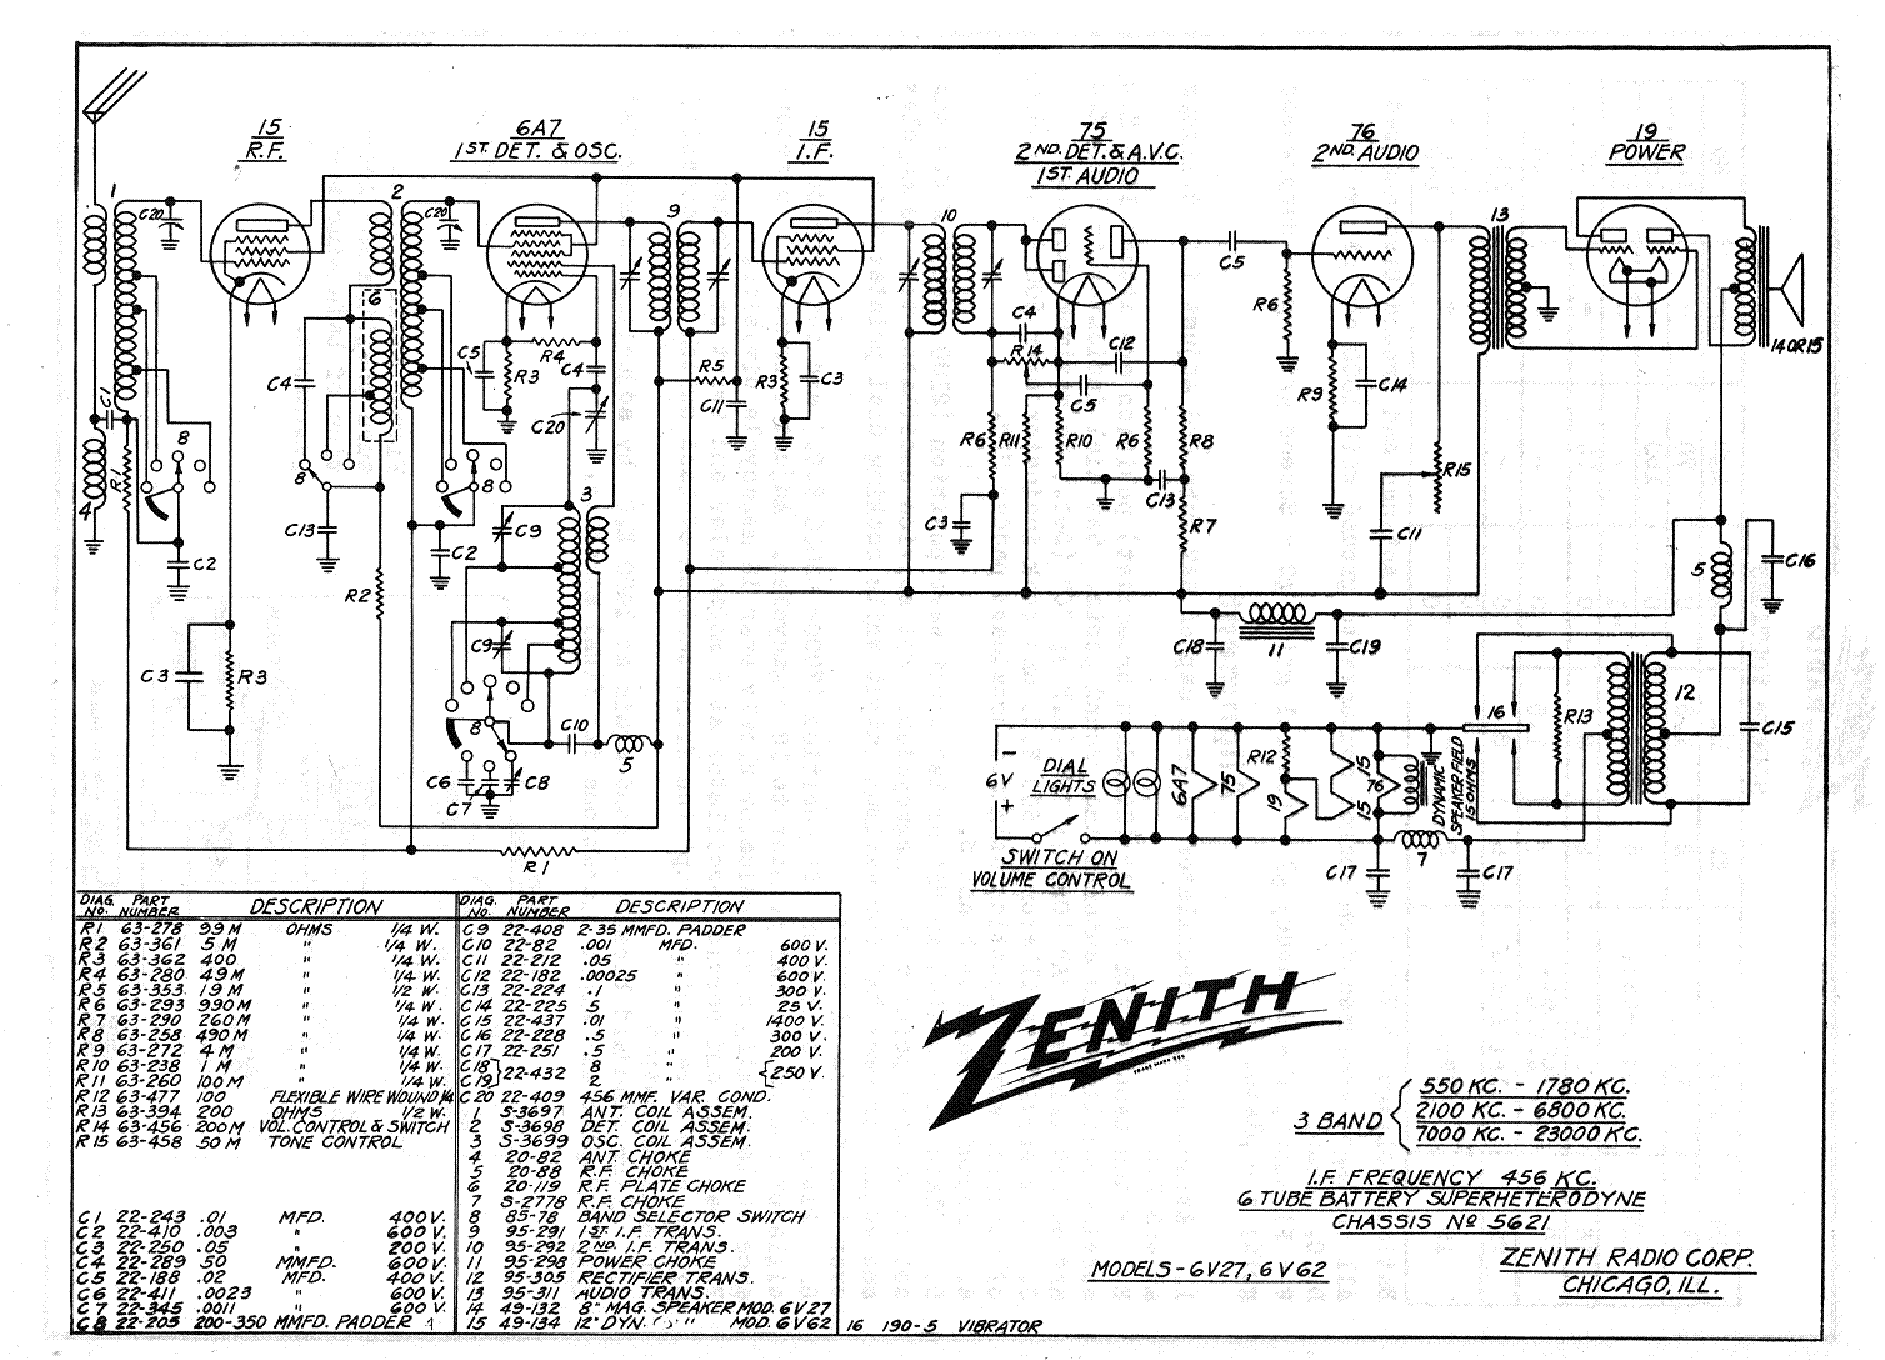 ZENITH 6V27,6V62 SCH Service Manual download, schematics